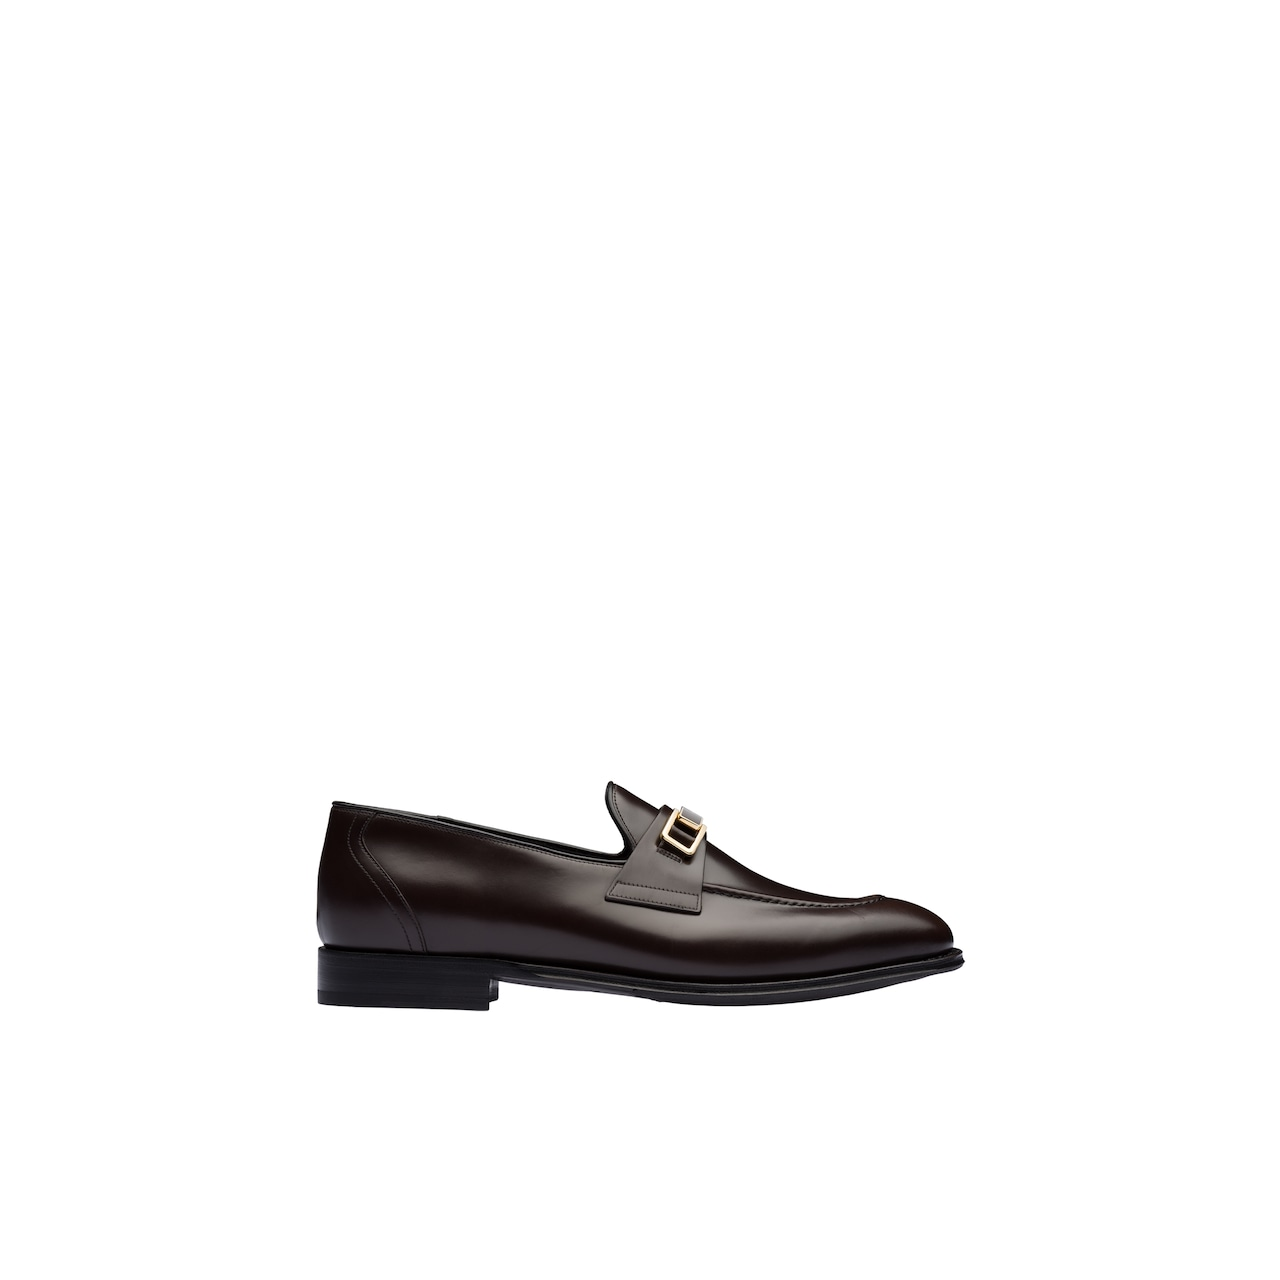 Bright Calf leather loafers